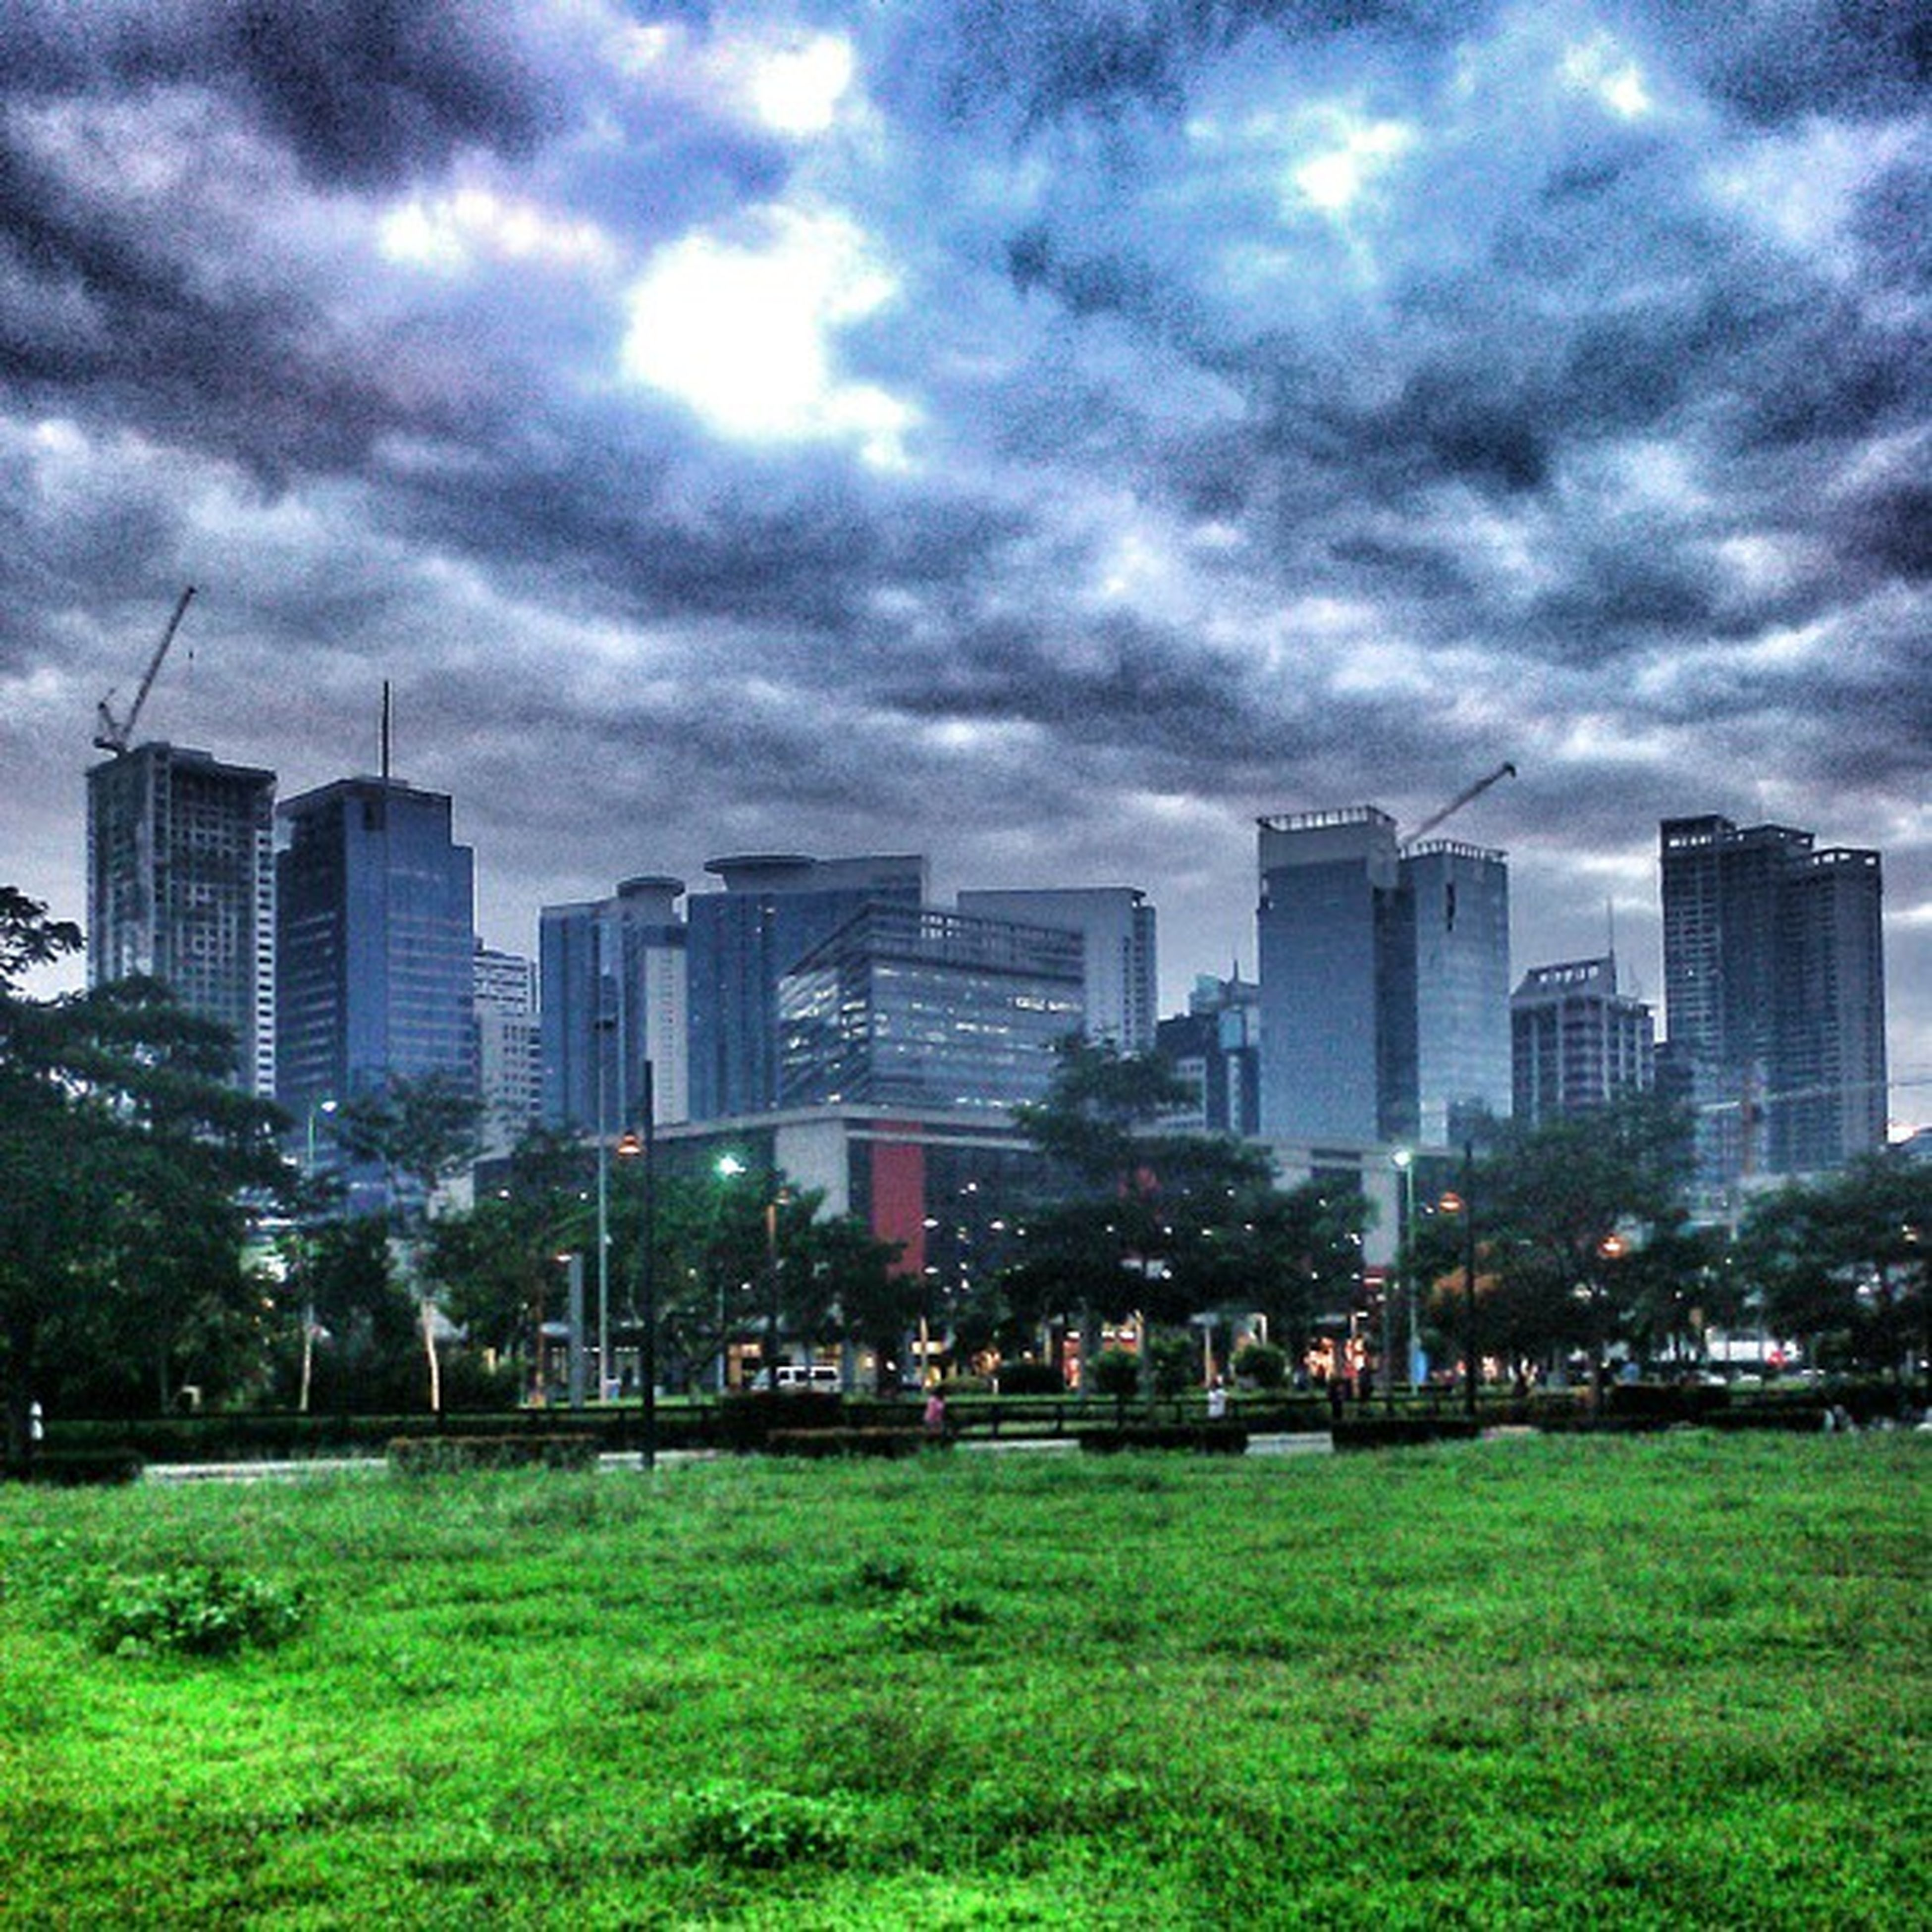 building exterior, city, sky, architecture, cloud - sky, built structure, cloudy, cityscape, skyscraper, modern, grass, urban skyline, office building, cloud, tower, weather, growth, tall - high, skyline, city life